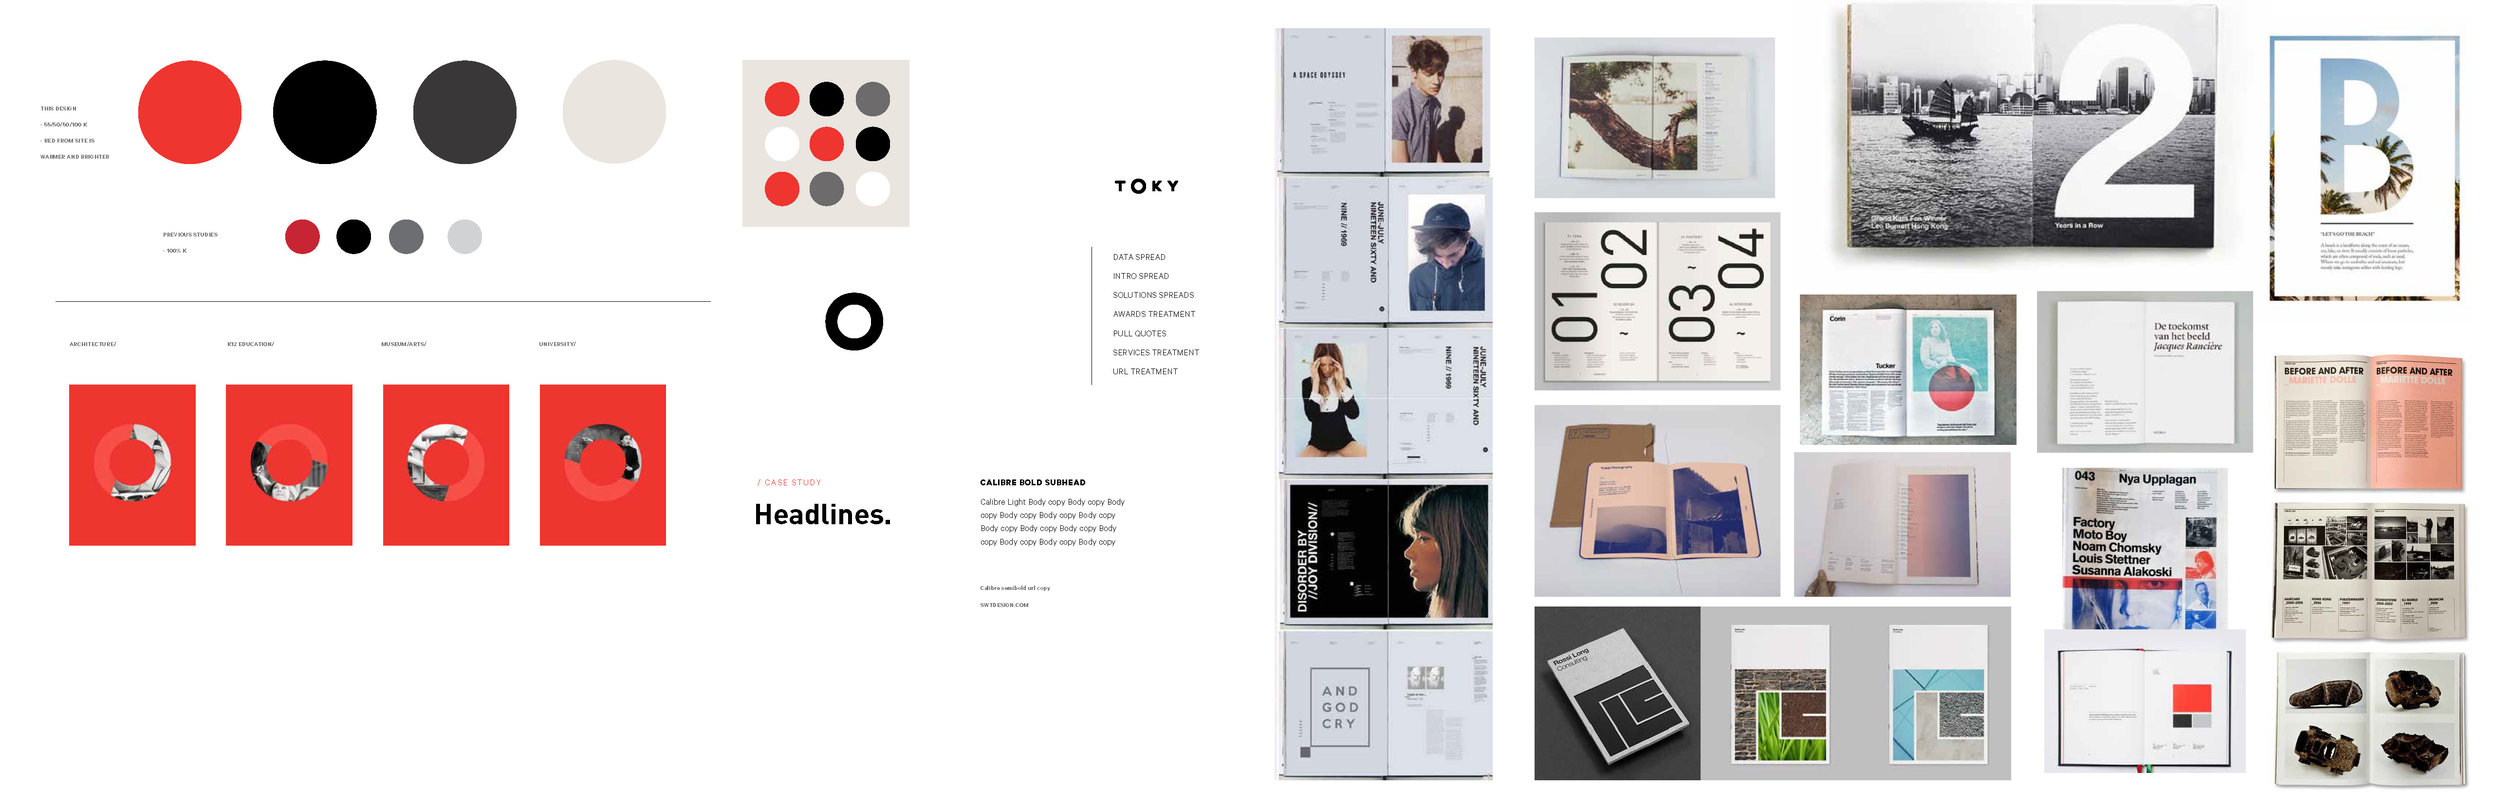 Pages from TOKY_ARCHITECTURE_CASE STUDY_6-5_WIP_Page_1.jpg